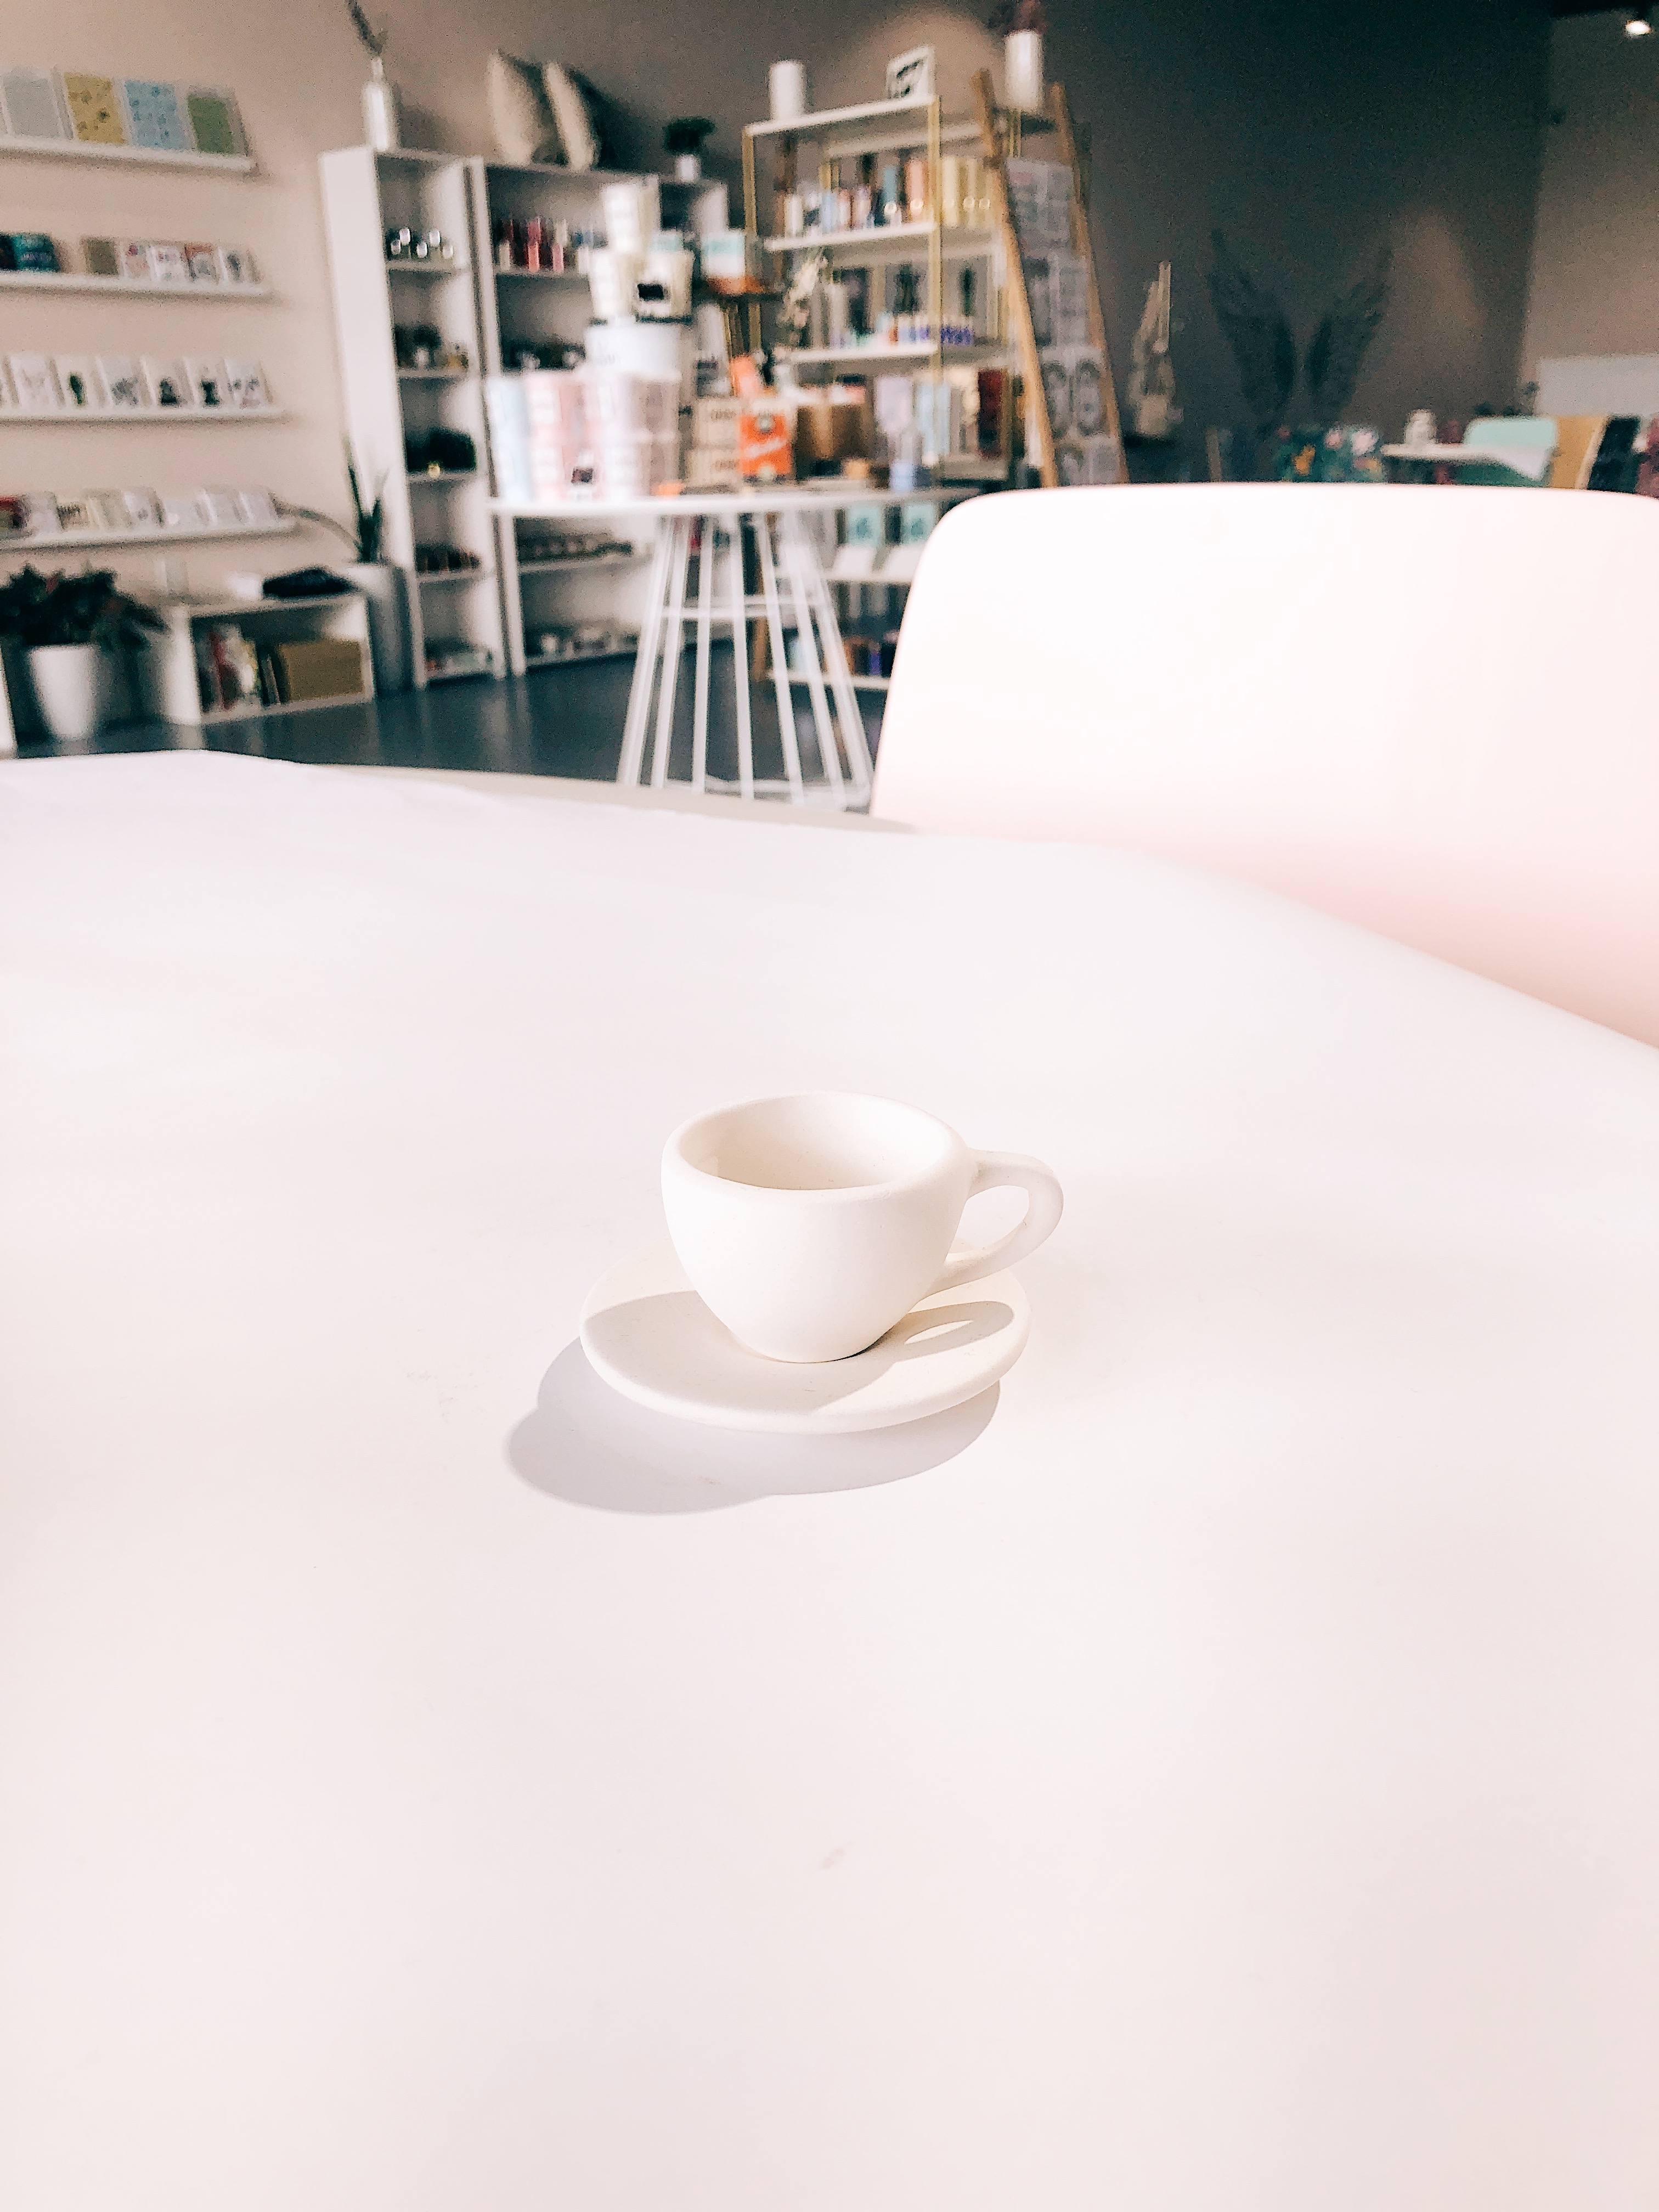 Tiny Tea cup and Saucer Tot